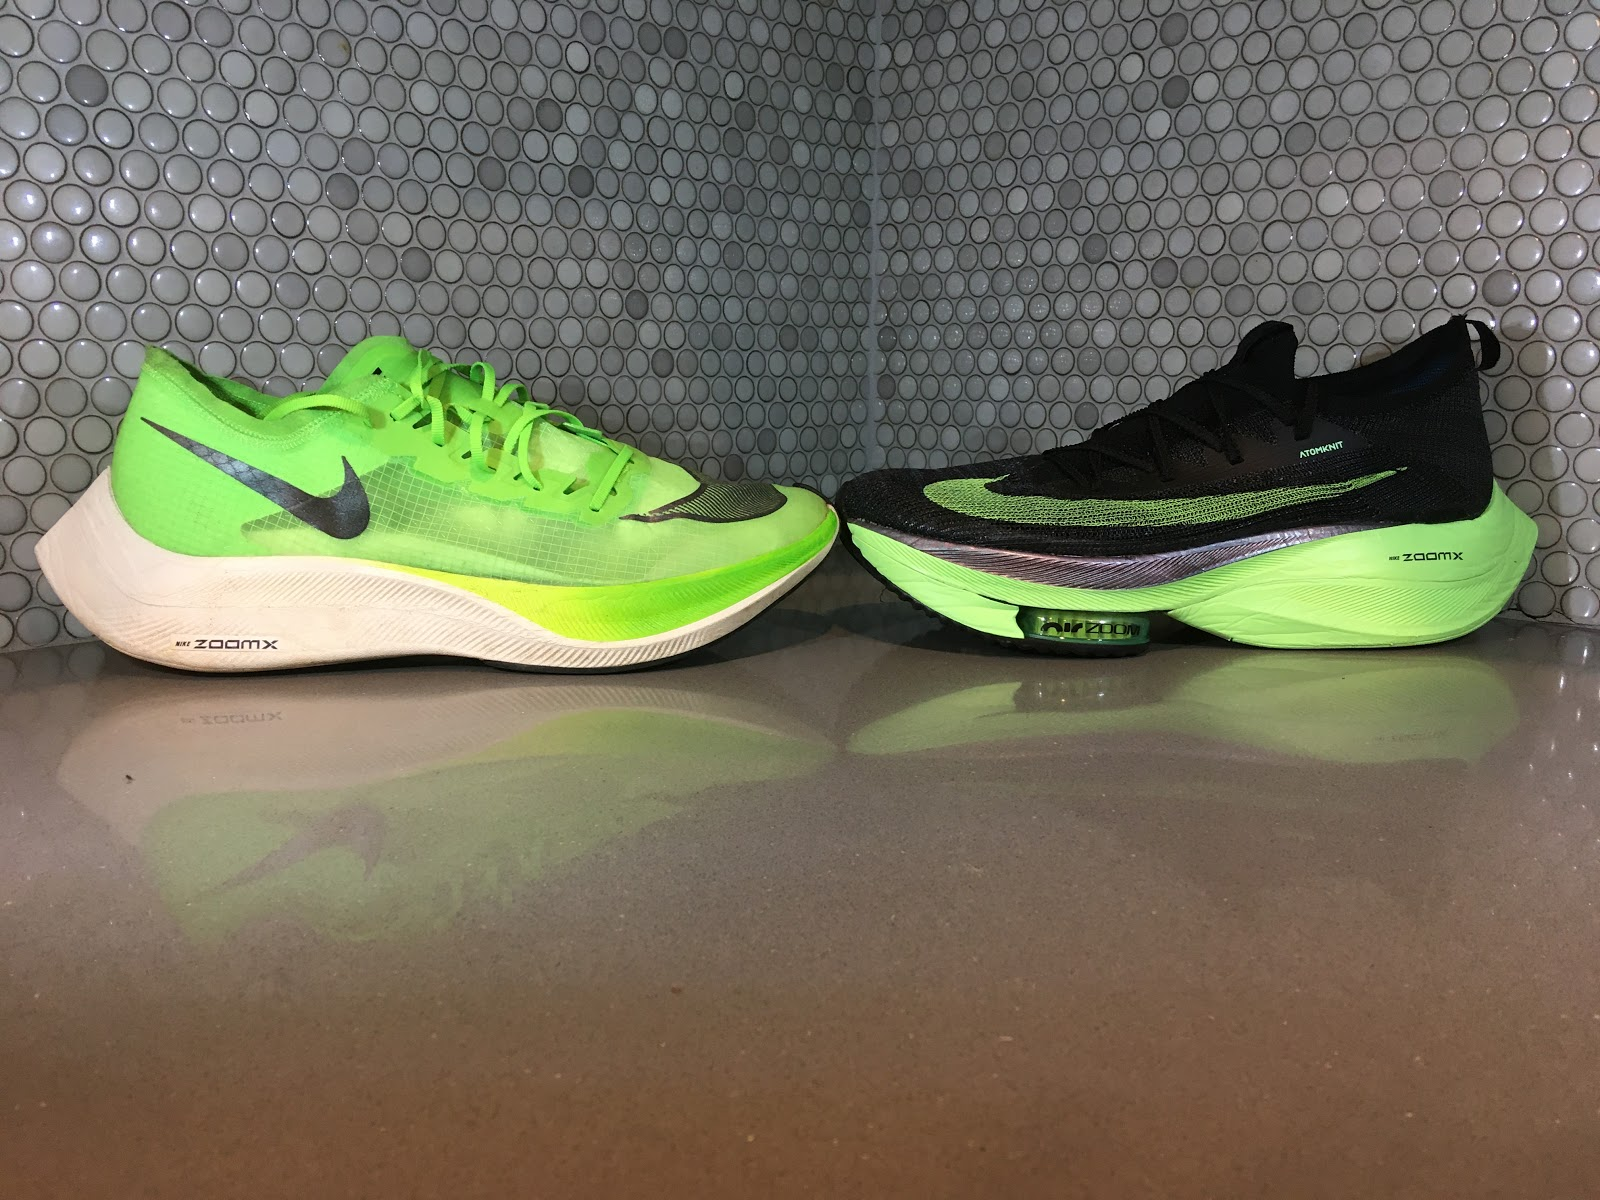 Nike VaporFly Next% (Kenenisa Bekele) vs. Nike AlphaFly Air Zoom Next% (Eliud Kipchoge) Source: Road Trail Run